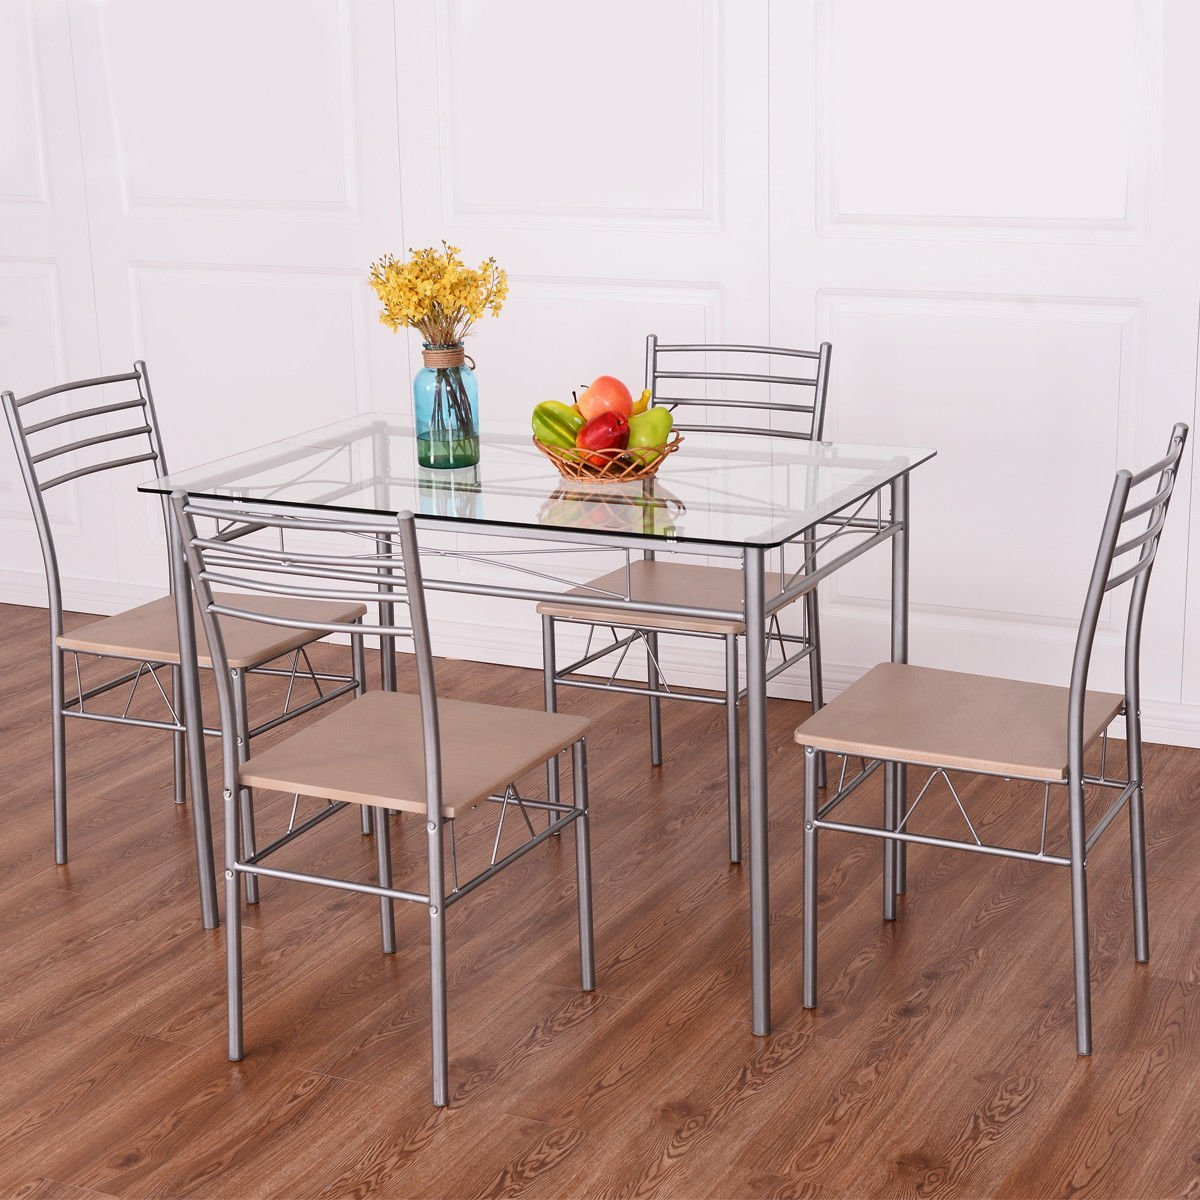 5 Piece Dining Set Table And 4 Chairs Glass Top Kitchen Breakfast Furniture, Sturdy Tempered Glass and Premium Steel Construction, Last for Years to Come , Clear Glass Top, Adding a Modern Style